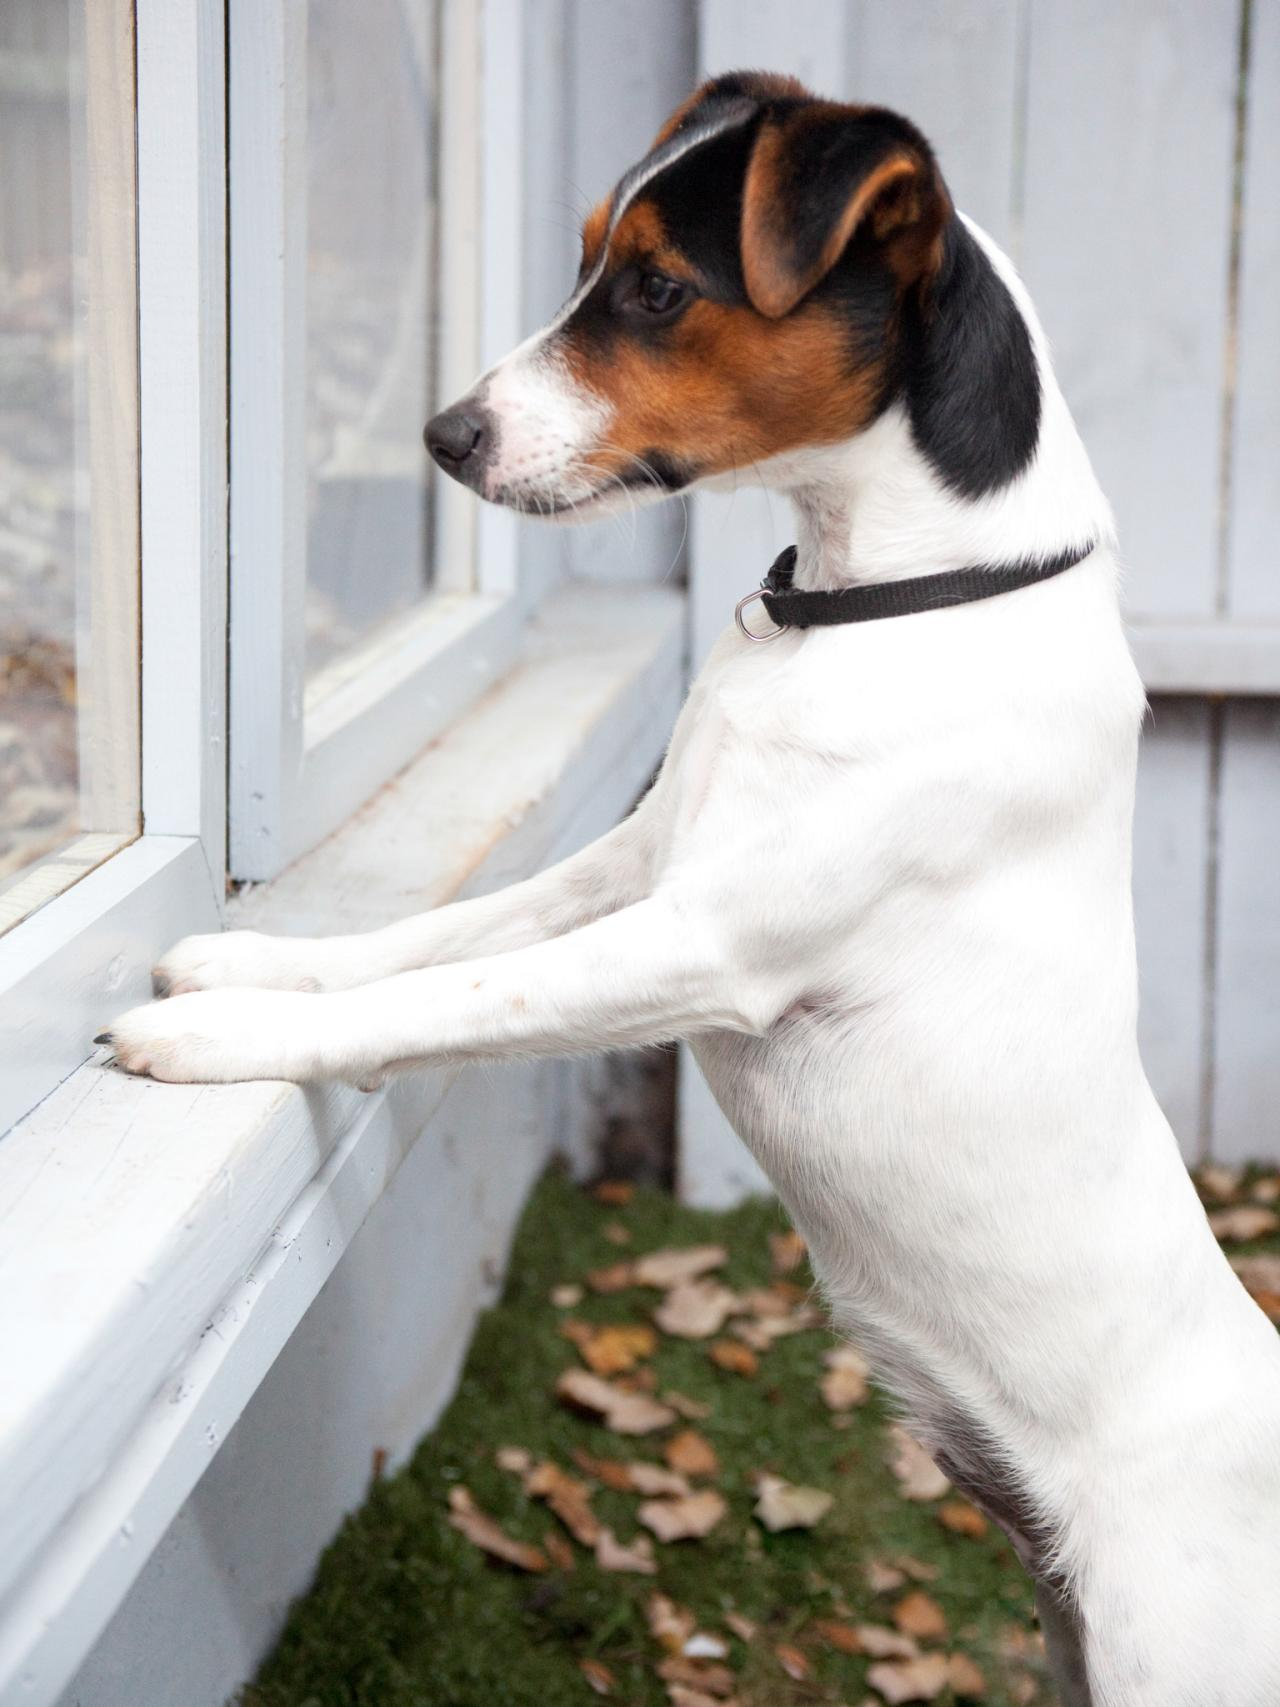 DIY - Peek-A-Boo Window in Fence for Dogs, Do It Yourself At Home